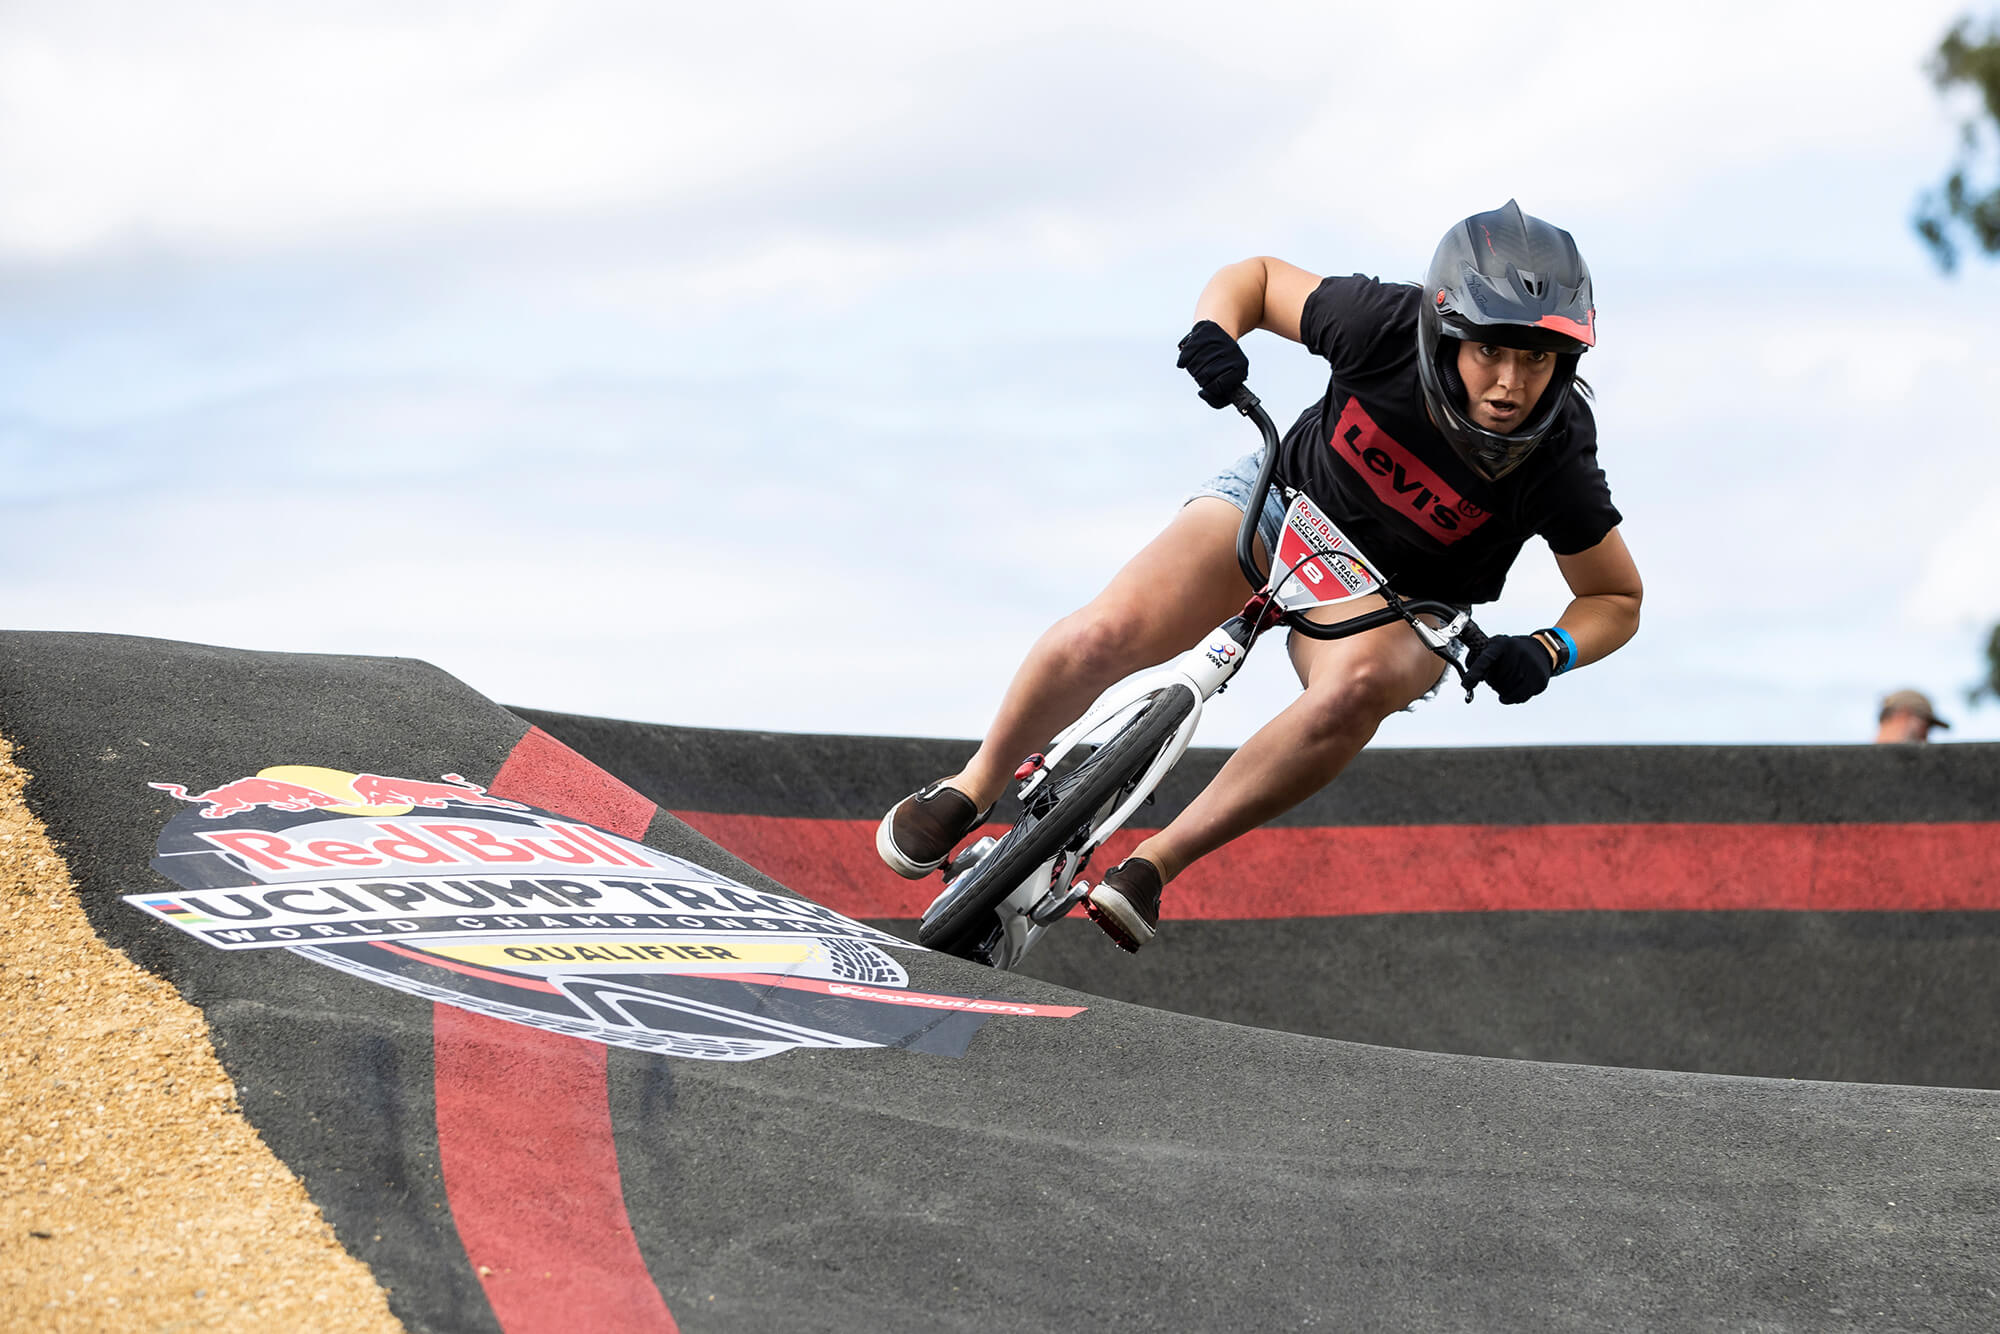 Red Bull Pump Track Cambridge NZ 2021 - Graeme Murray - Megan Williams